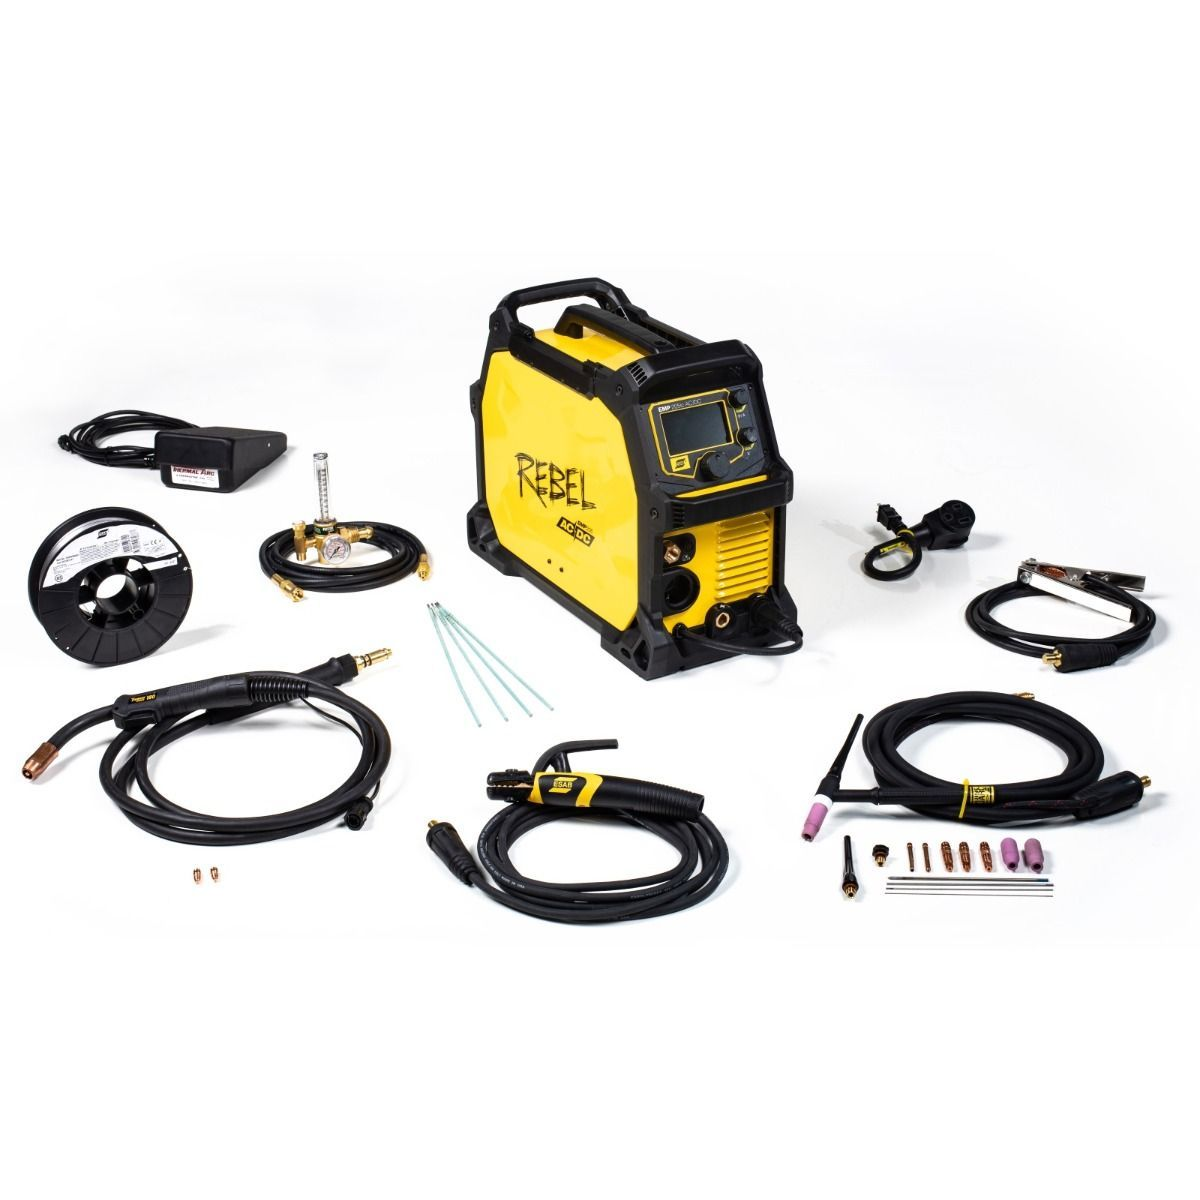 ESAB Rebel EMP 205ic Review